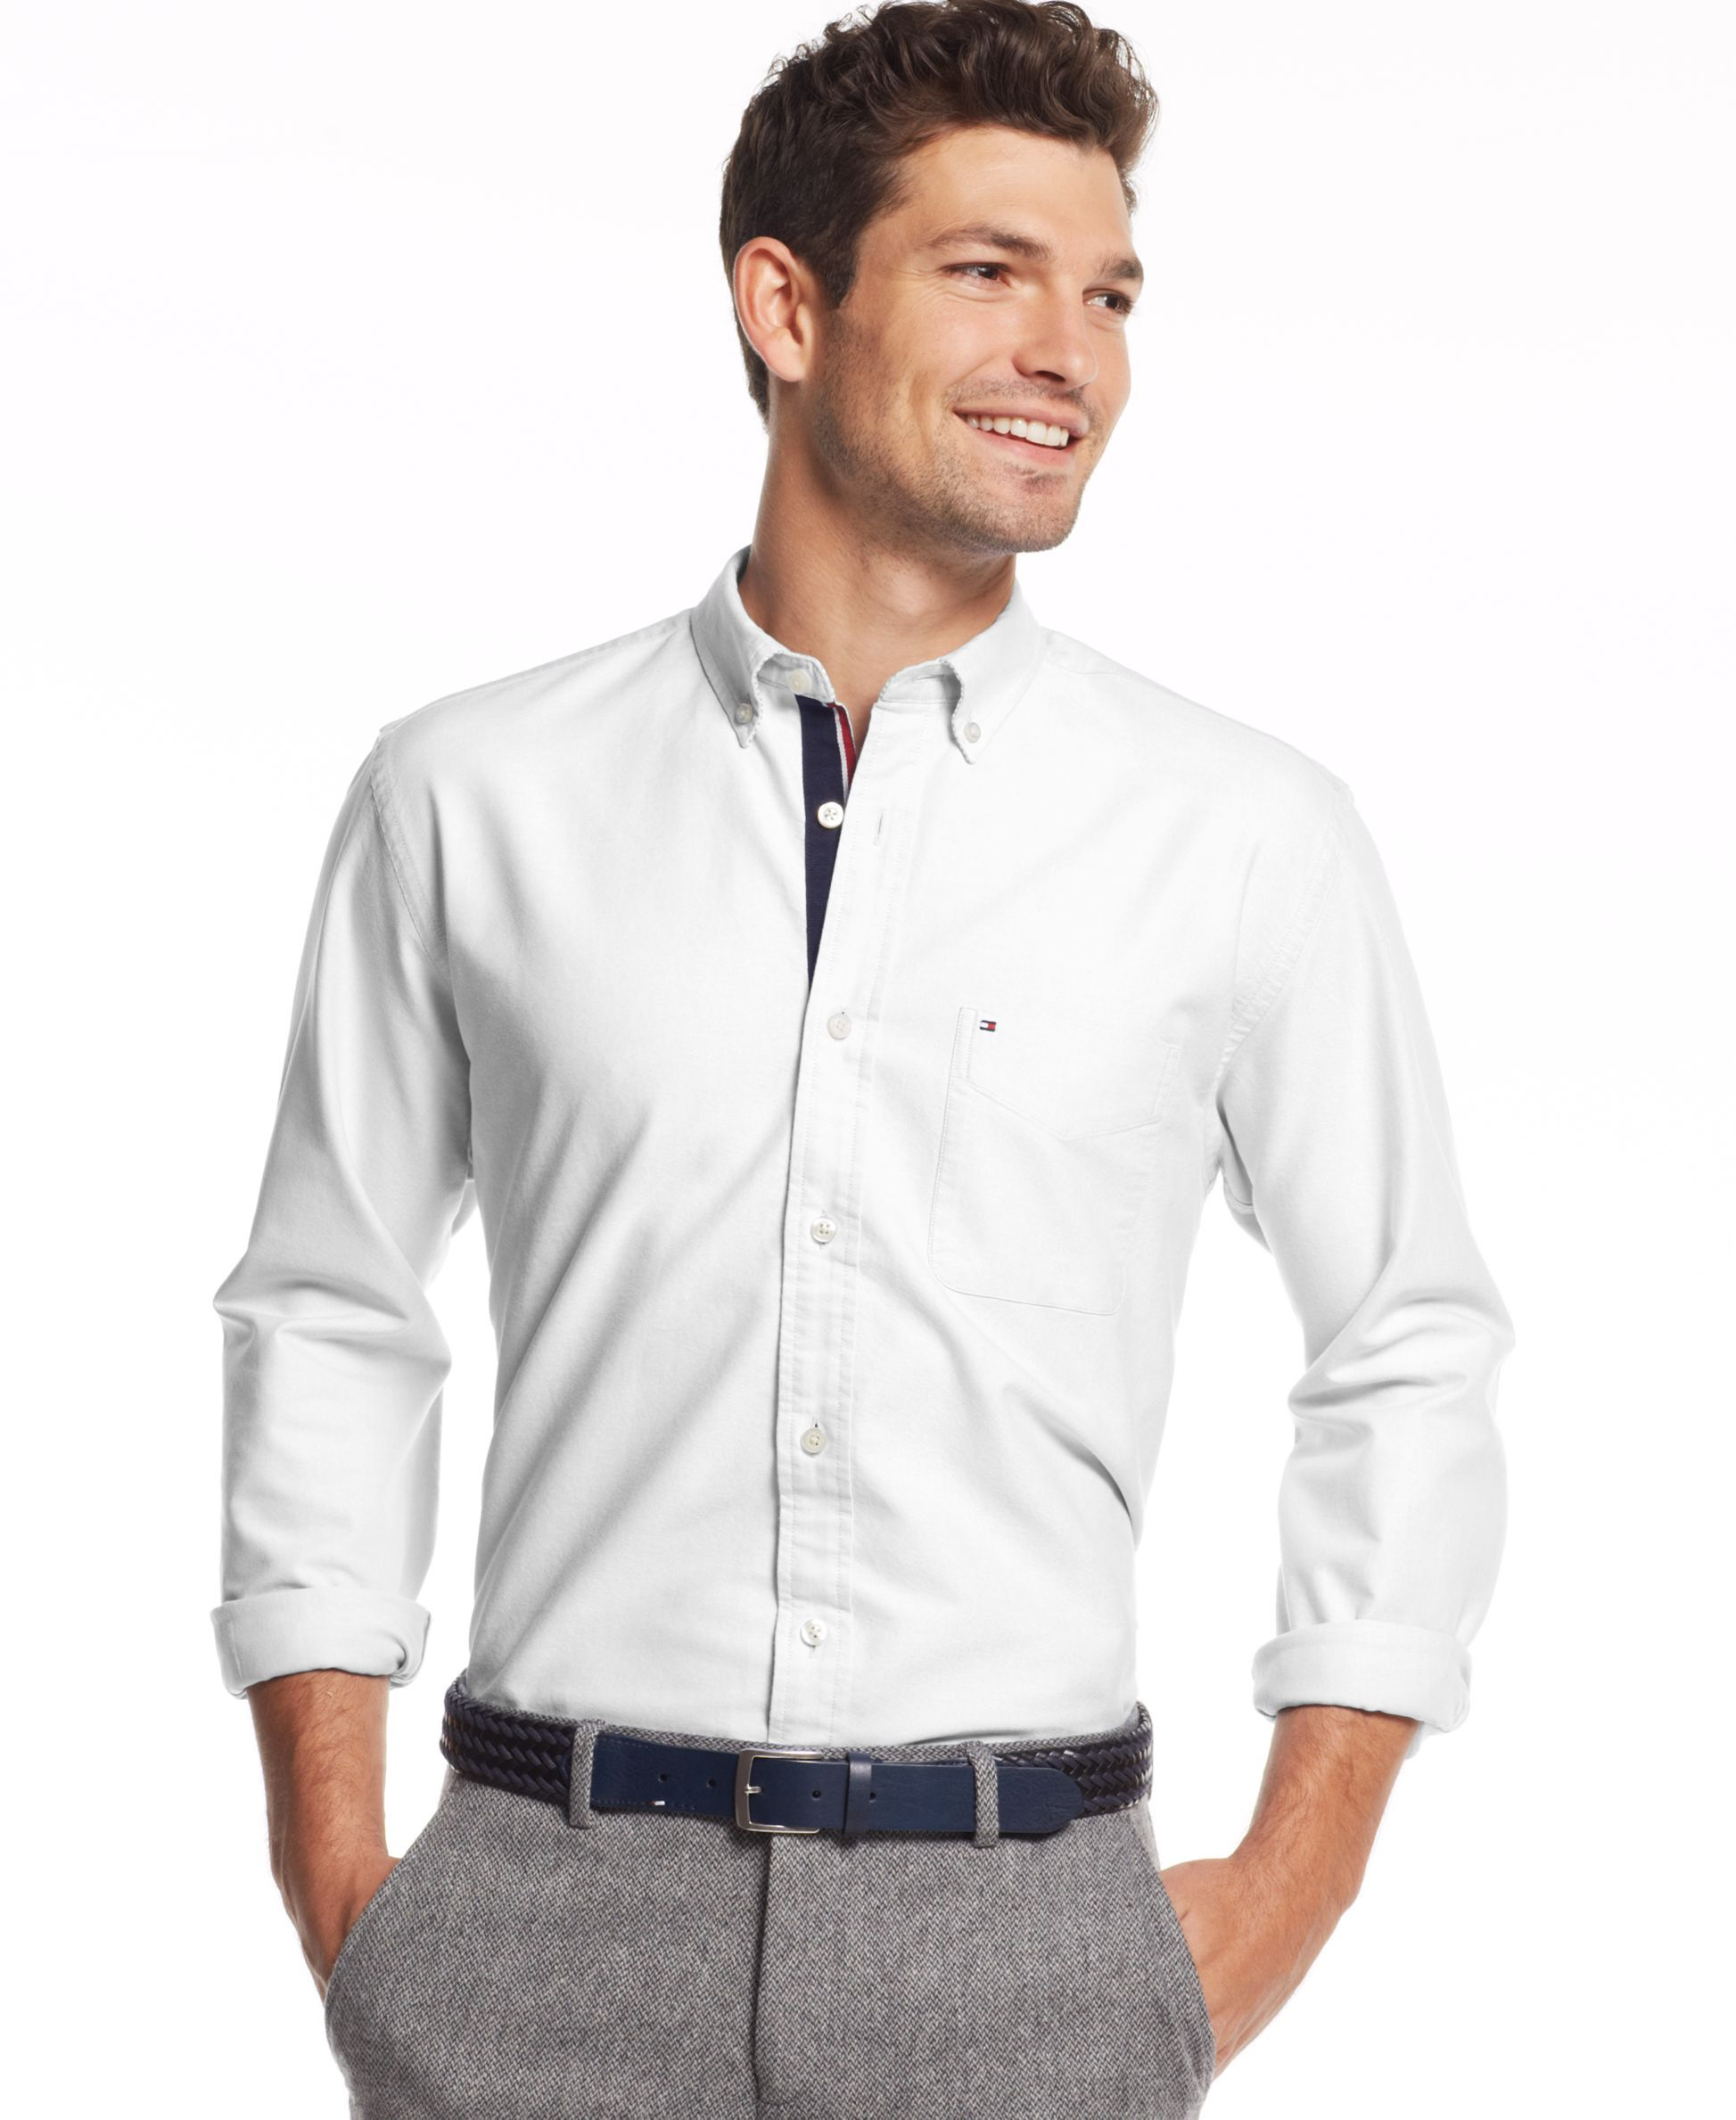 Tommy Hilfiger Cambridge Oxford Custom Fit Shirt Products Shirts